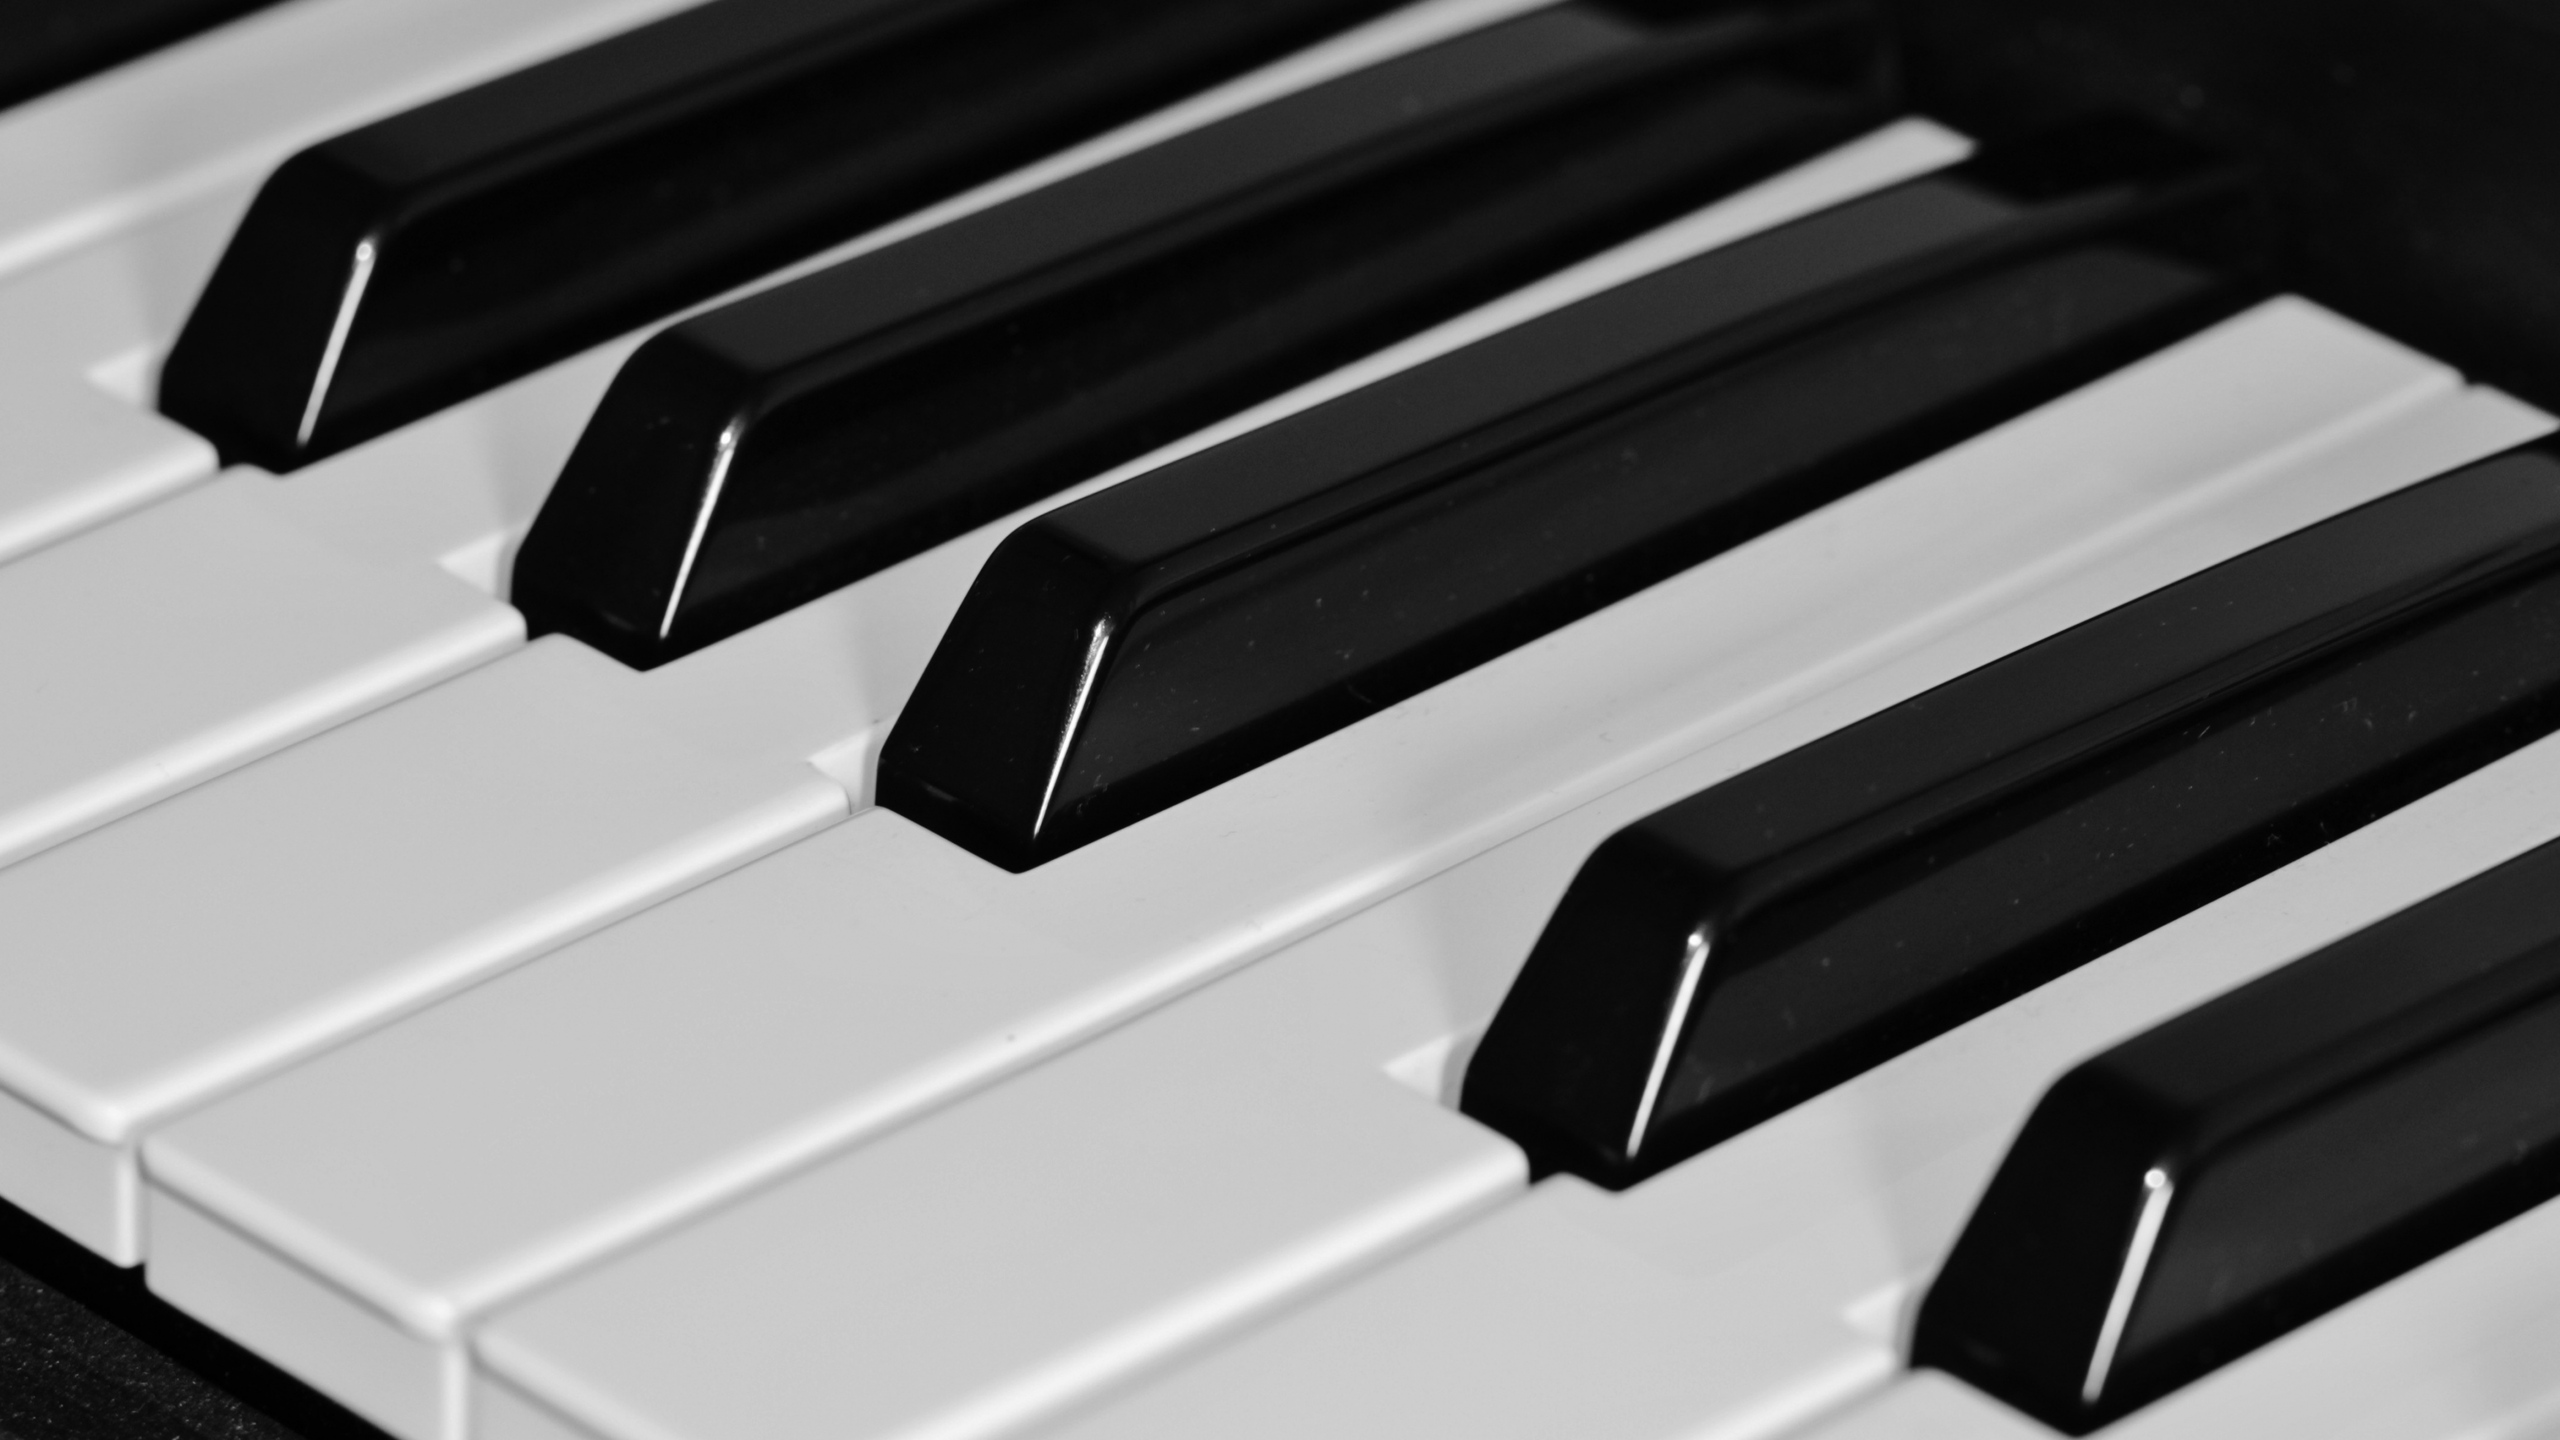 2560x1440 Piano Keys 1440p Resolution Hd 4k Wallpapers Images Backgrounds Photos And Pictures